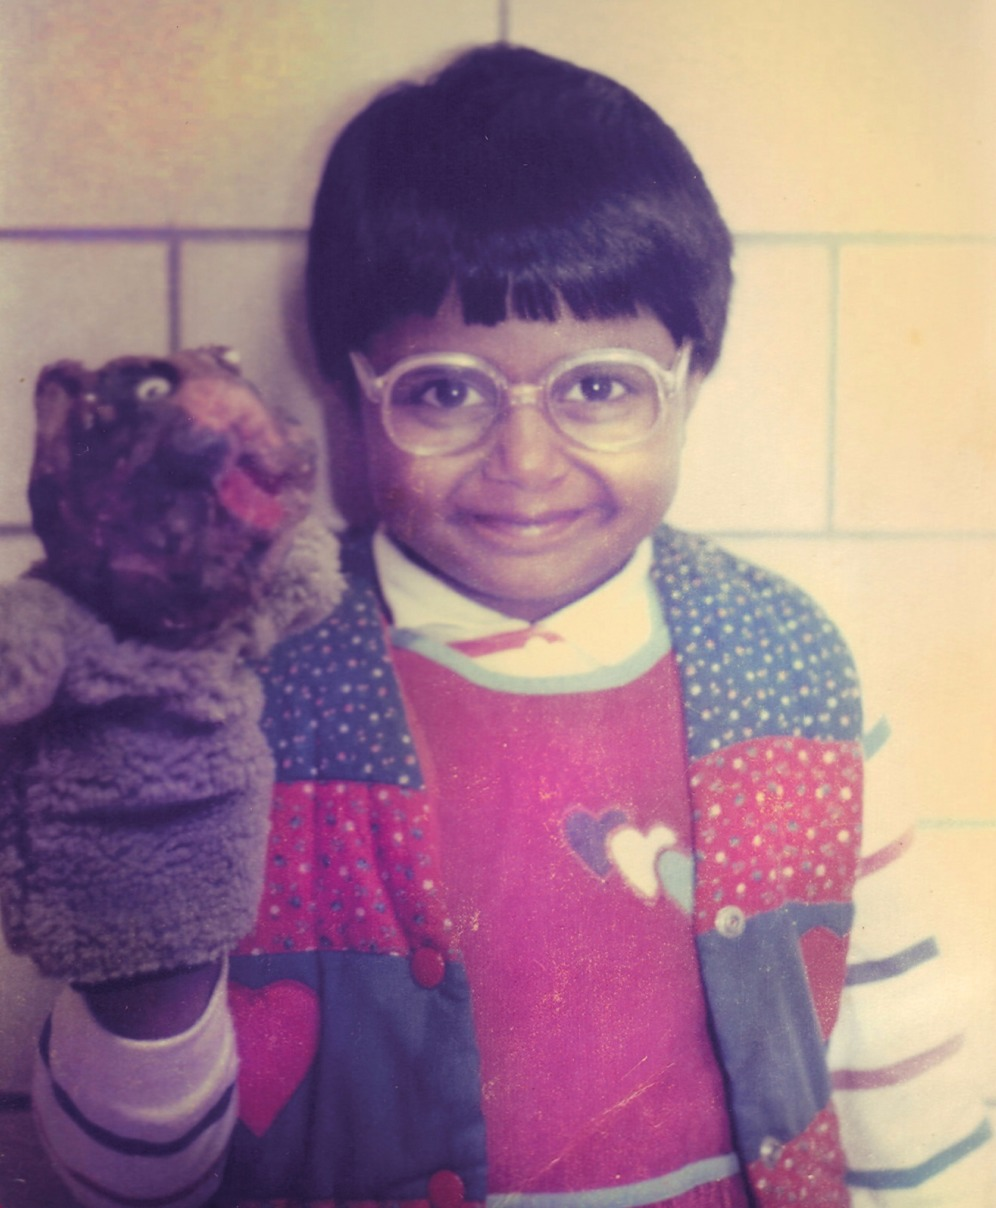 Young Mindy Kaling is smiling as she poses for a photograph. She has pixie cut and is wearing round glasses. She is also holding a puppet in her right hand.